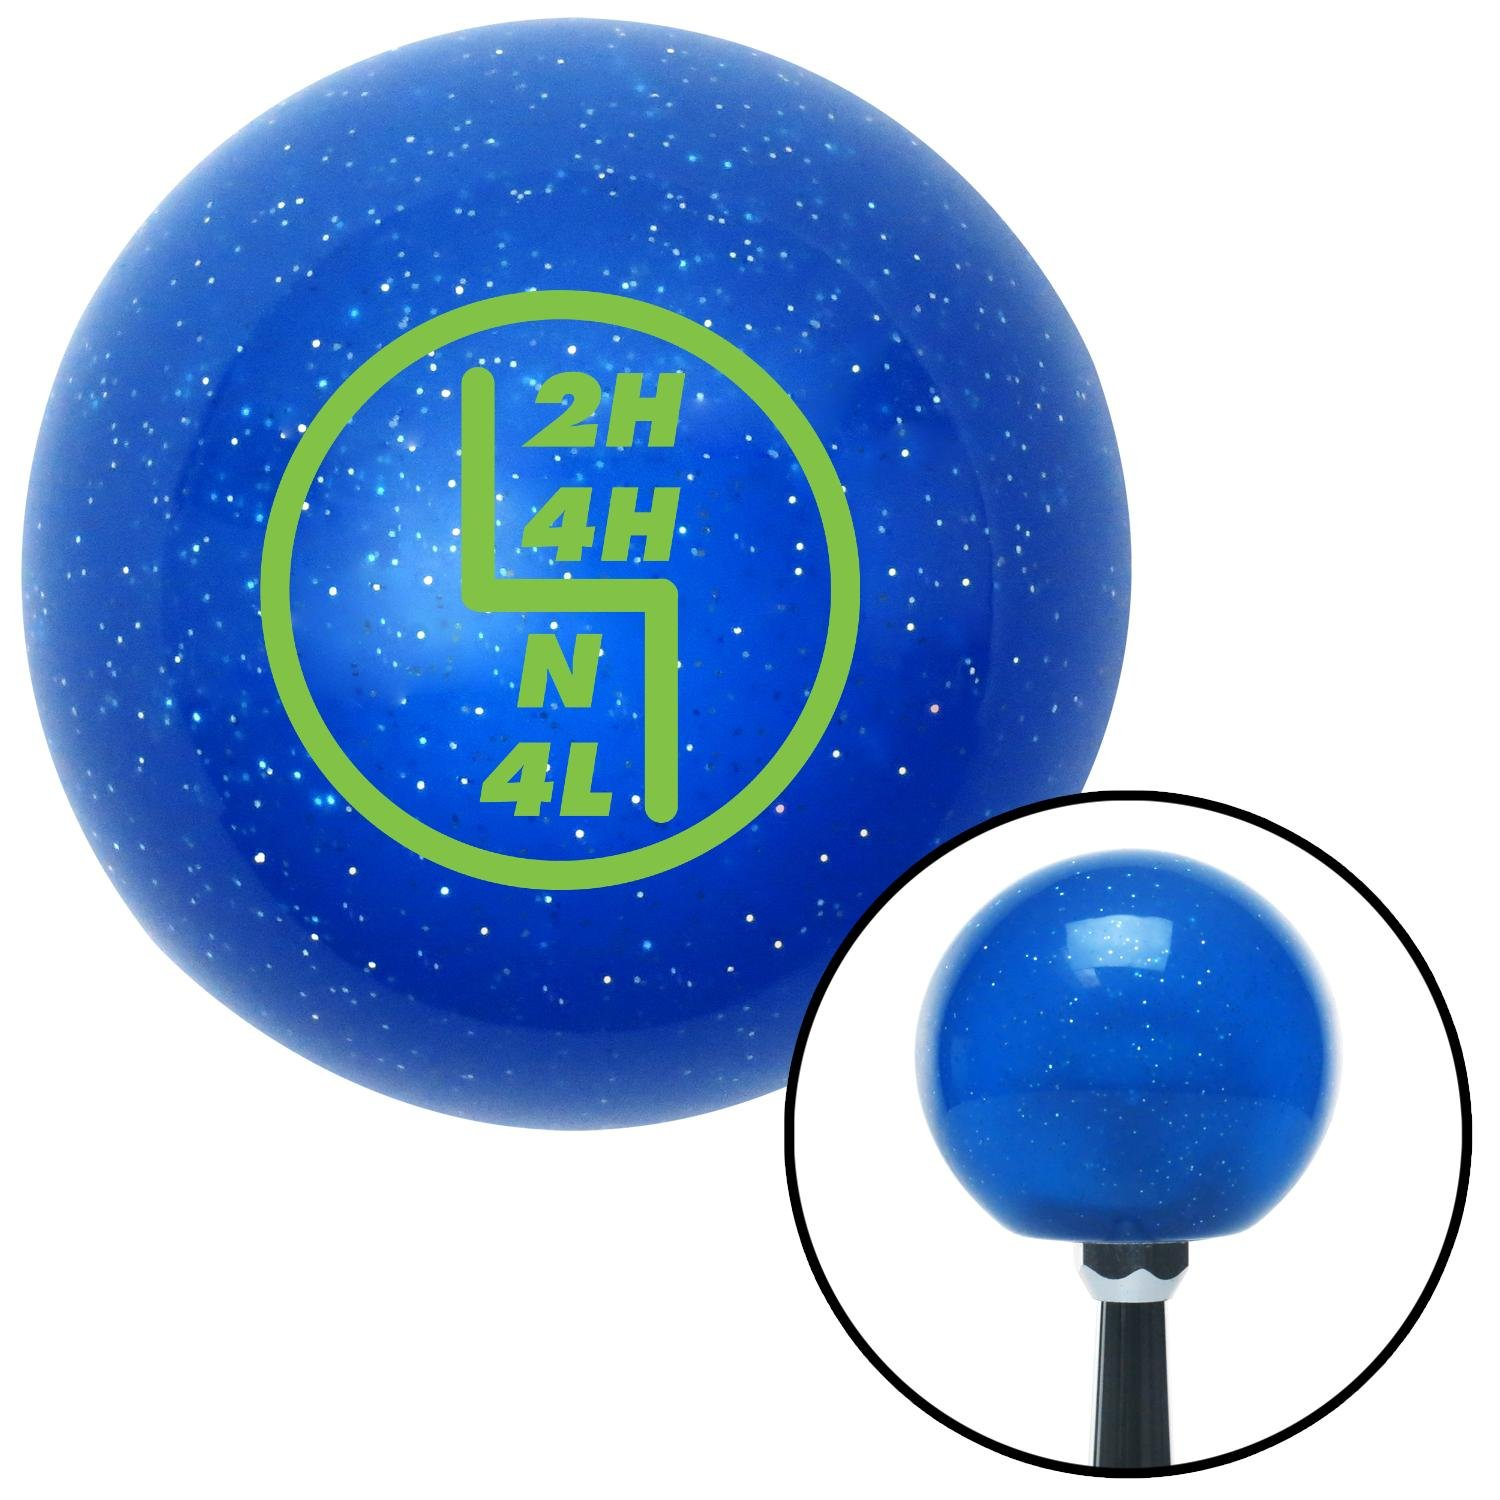 Green Transfer Case 4 American Shifter 20110 Blue Metal Flake Shift Knob with 16mm x 1.5 Insert